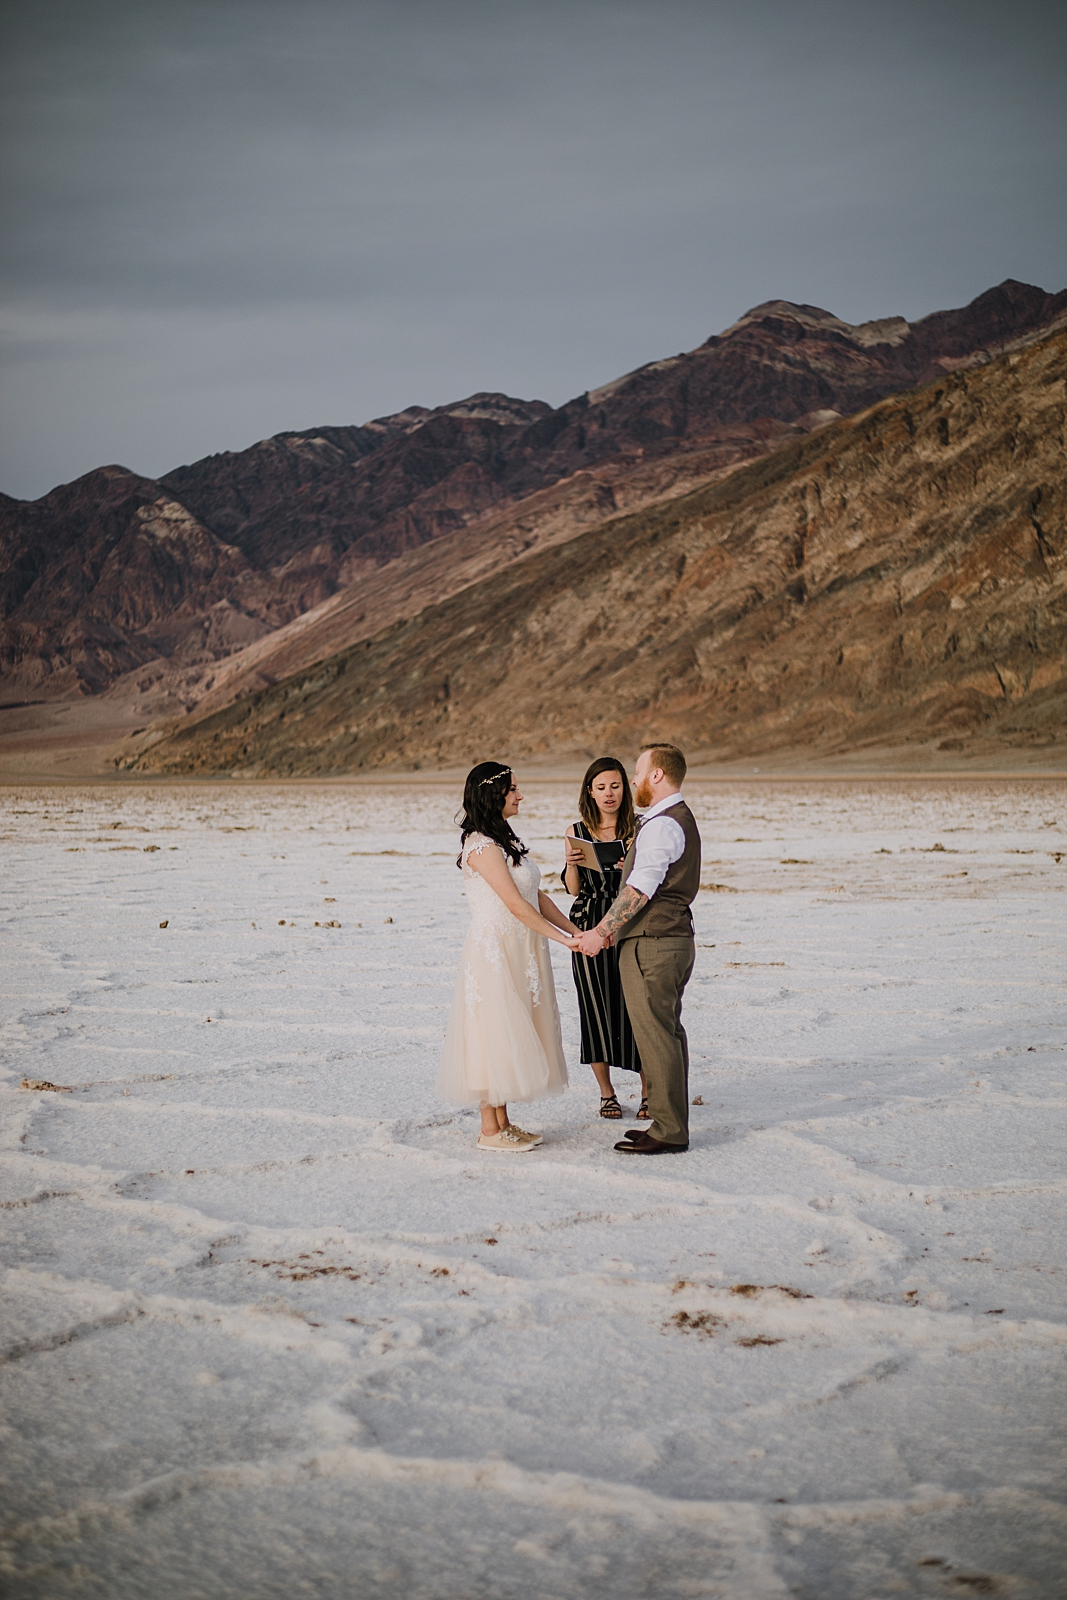 elopement on the salt flats, death valley national park elopement, elope in death valley, badwater basin elopement, hiking in death valley national park, sunset at badwater basin